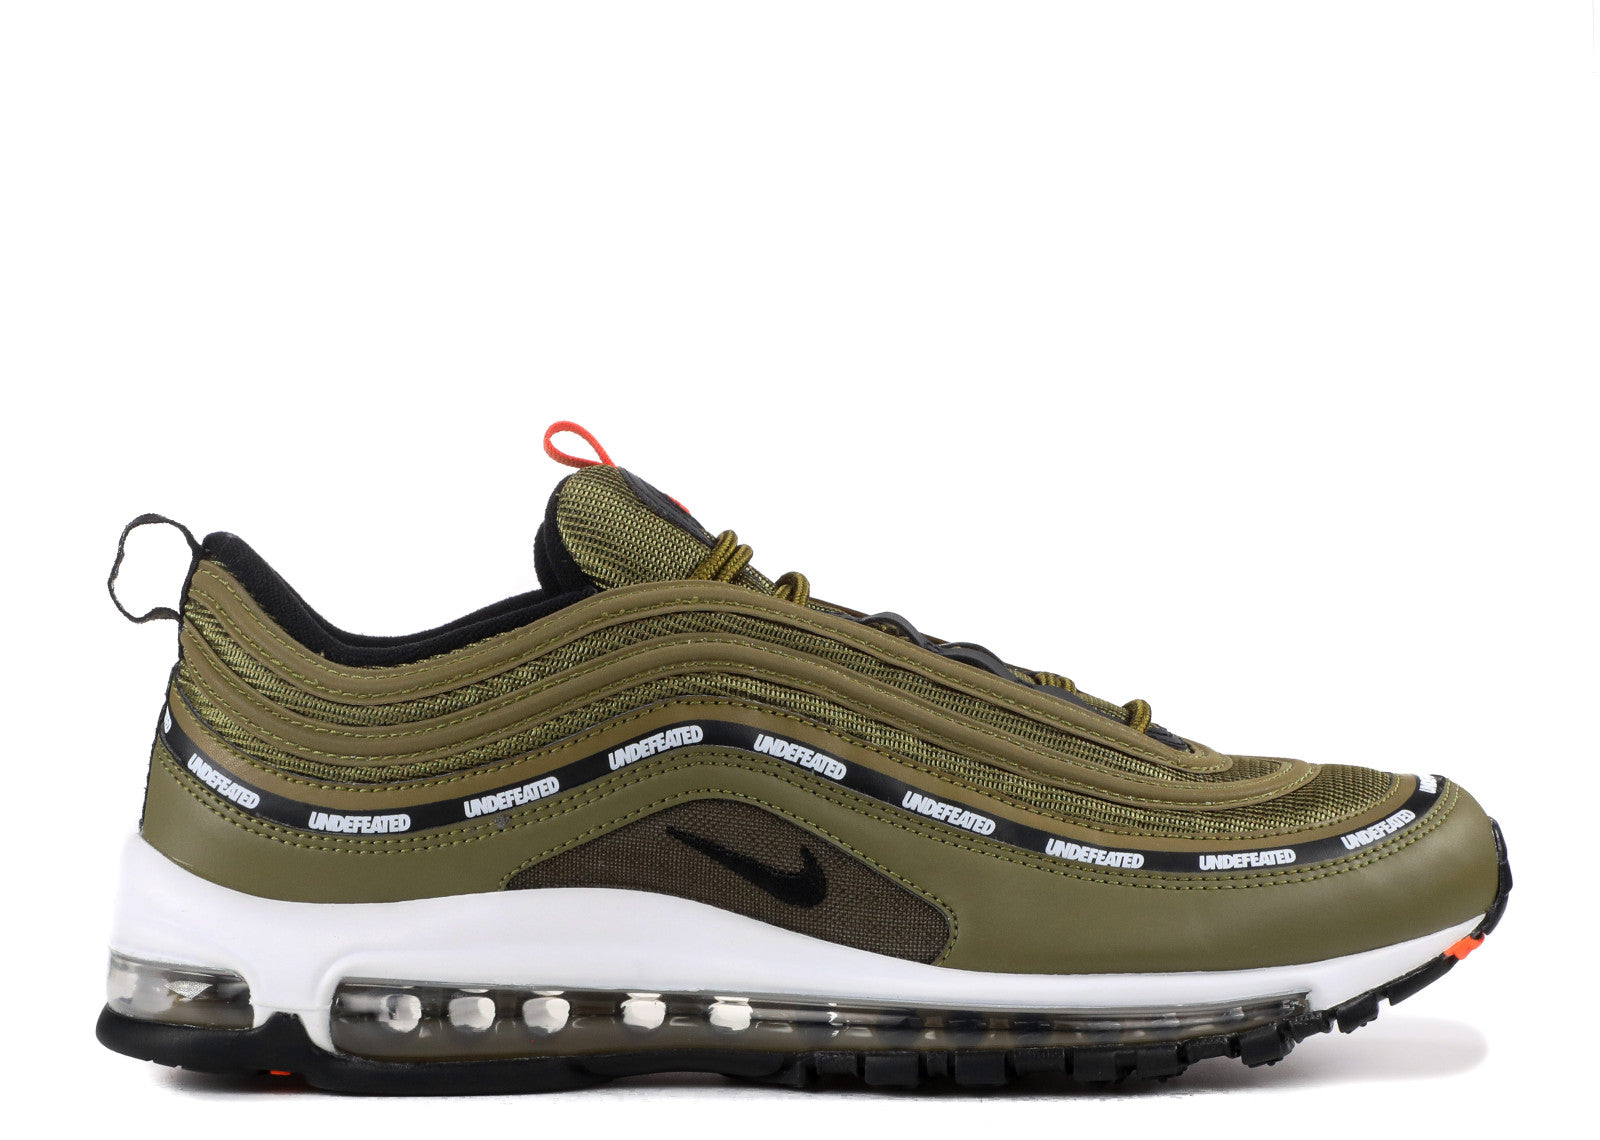 release date 61a44 02b56 Air Max 97 Undefeated Complexcon Exclusive